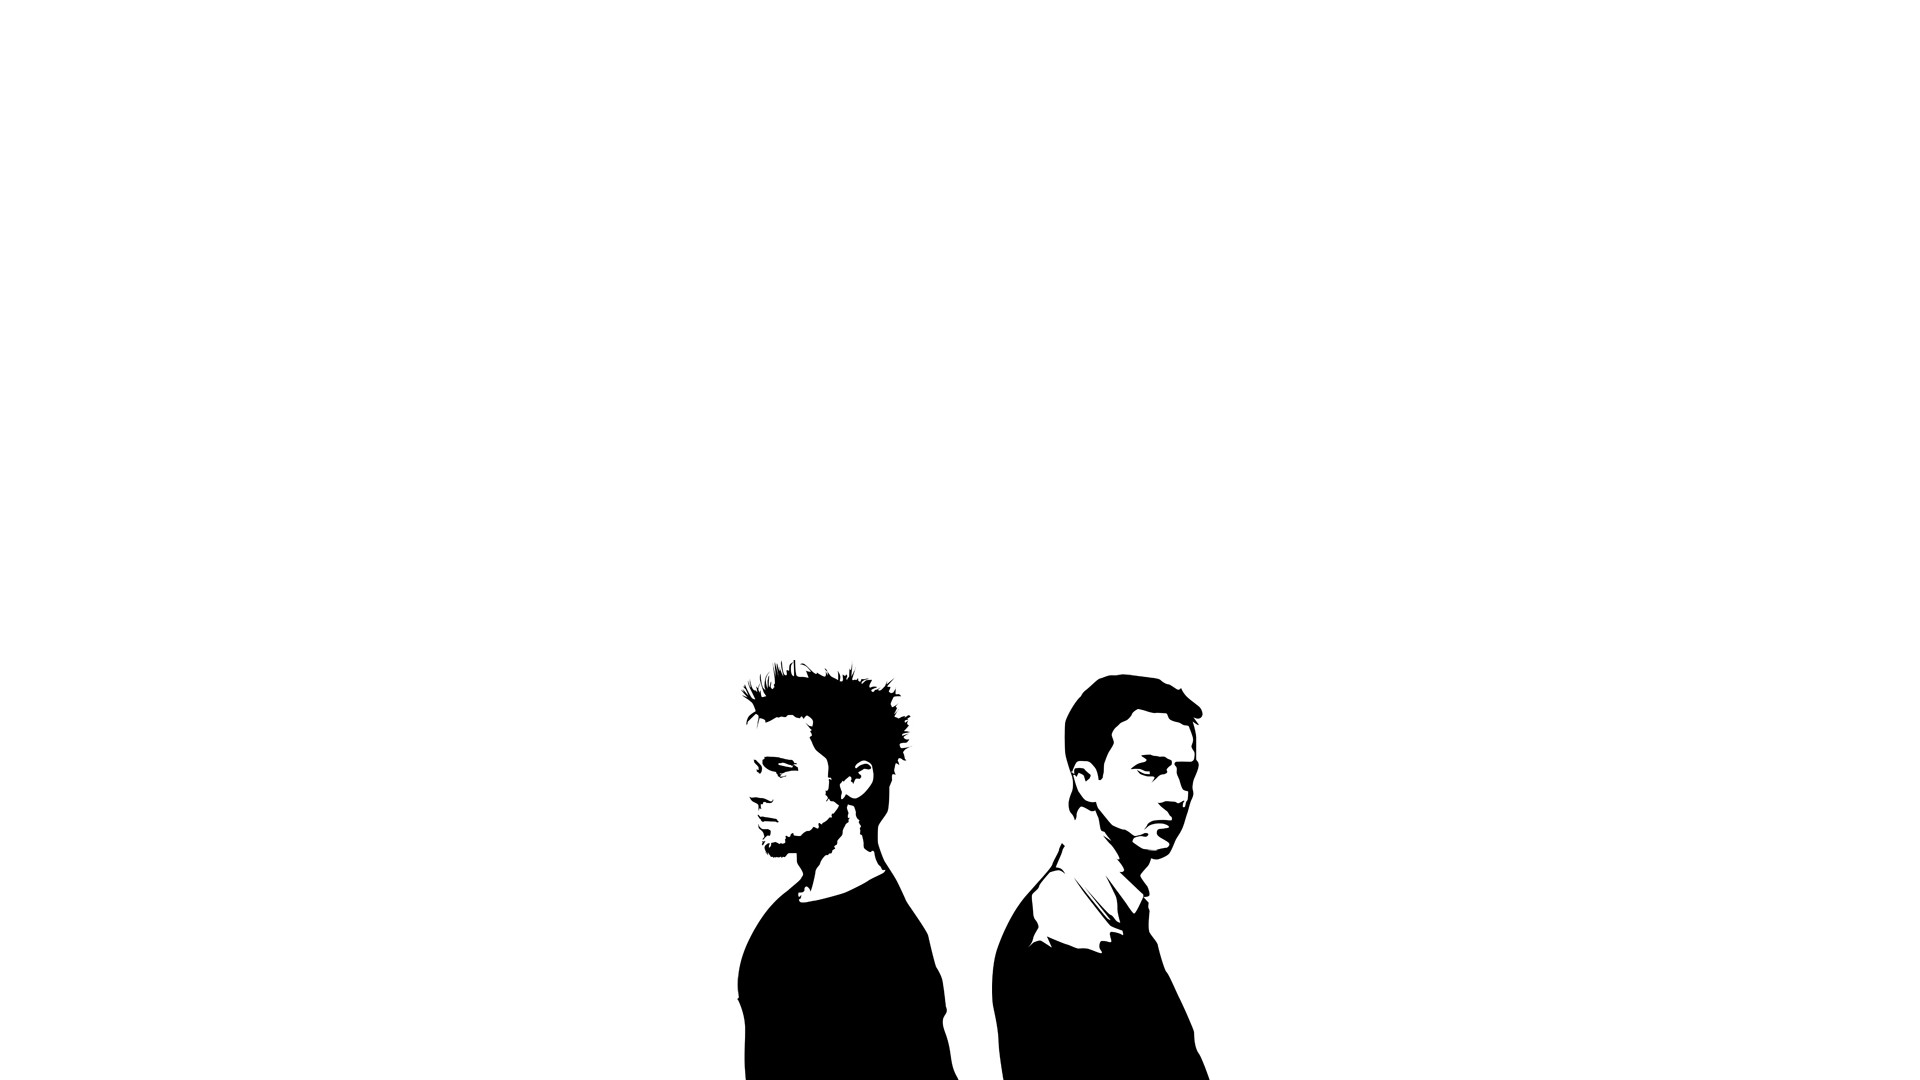 1080x1920 Wallpaper 103498 Download 2048x1449 Fight Club